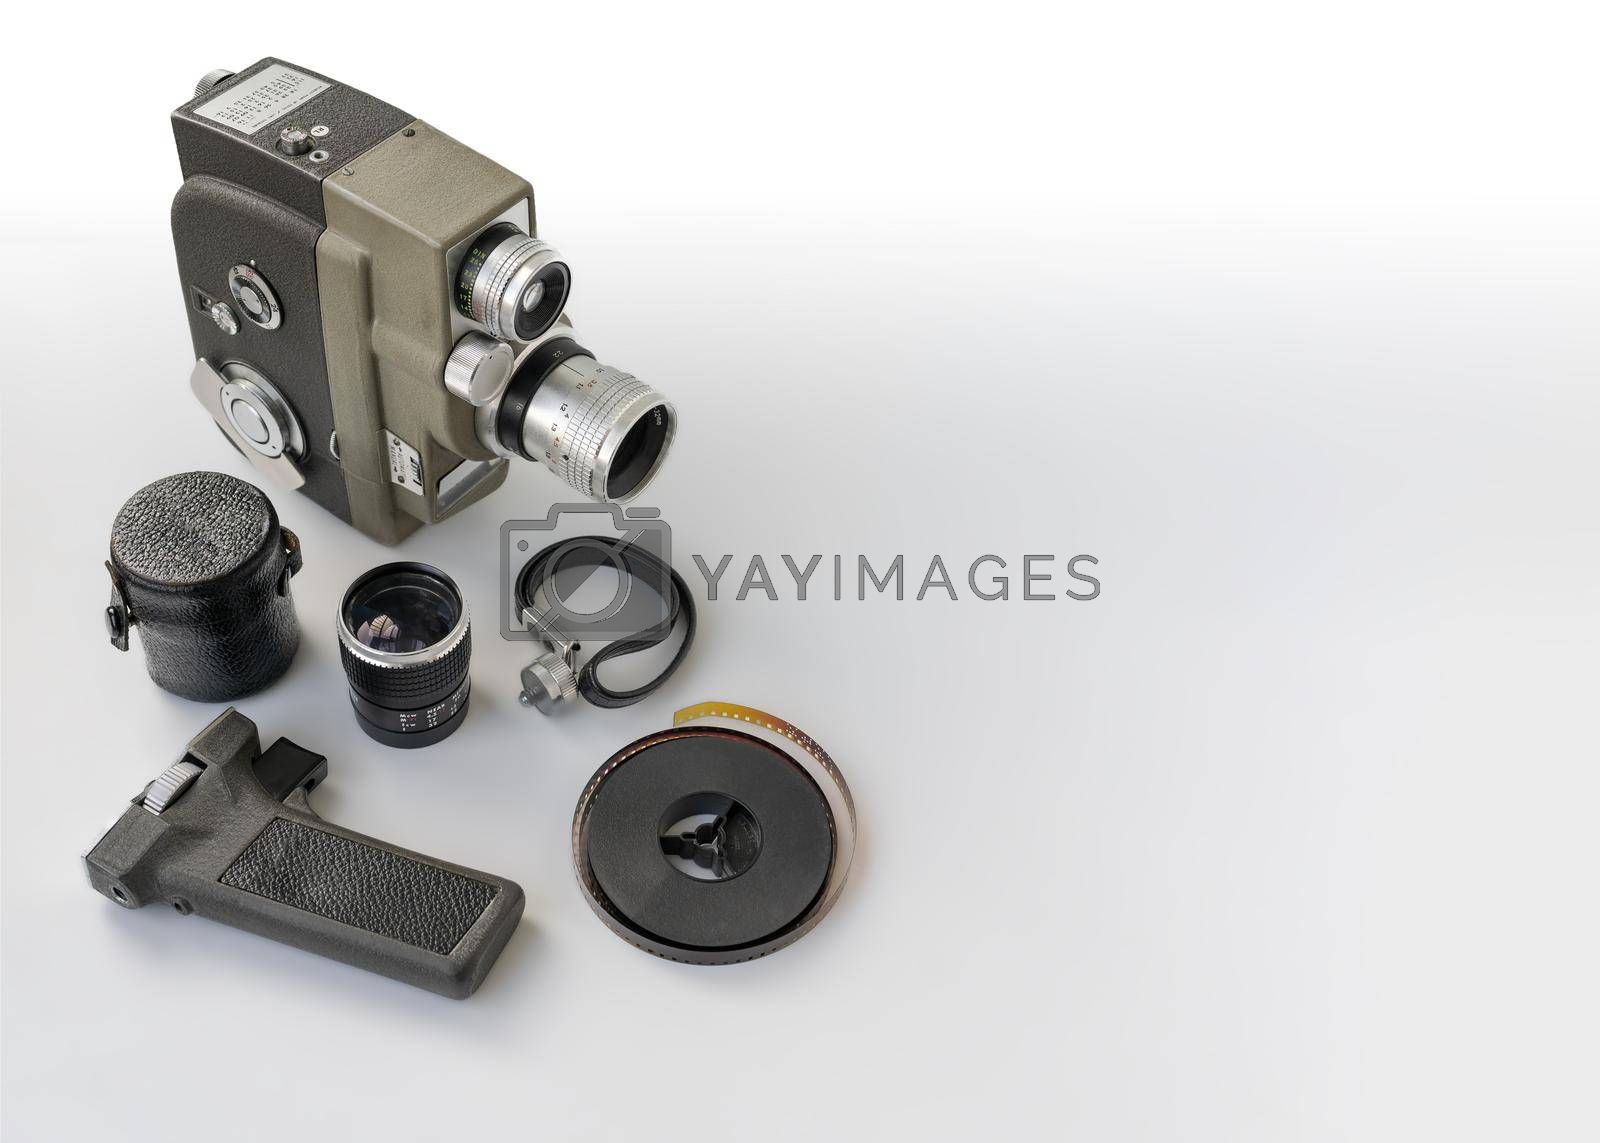 Royalty free image of Vintage 8mm camera with 8mm reel and accessories. by maramade